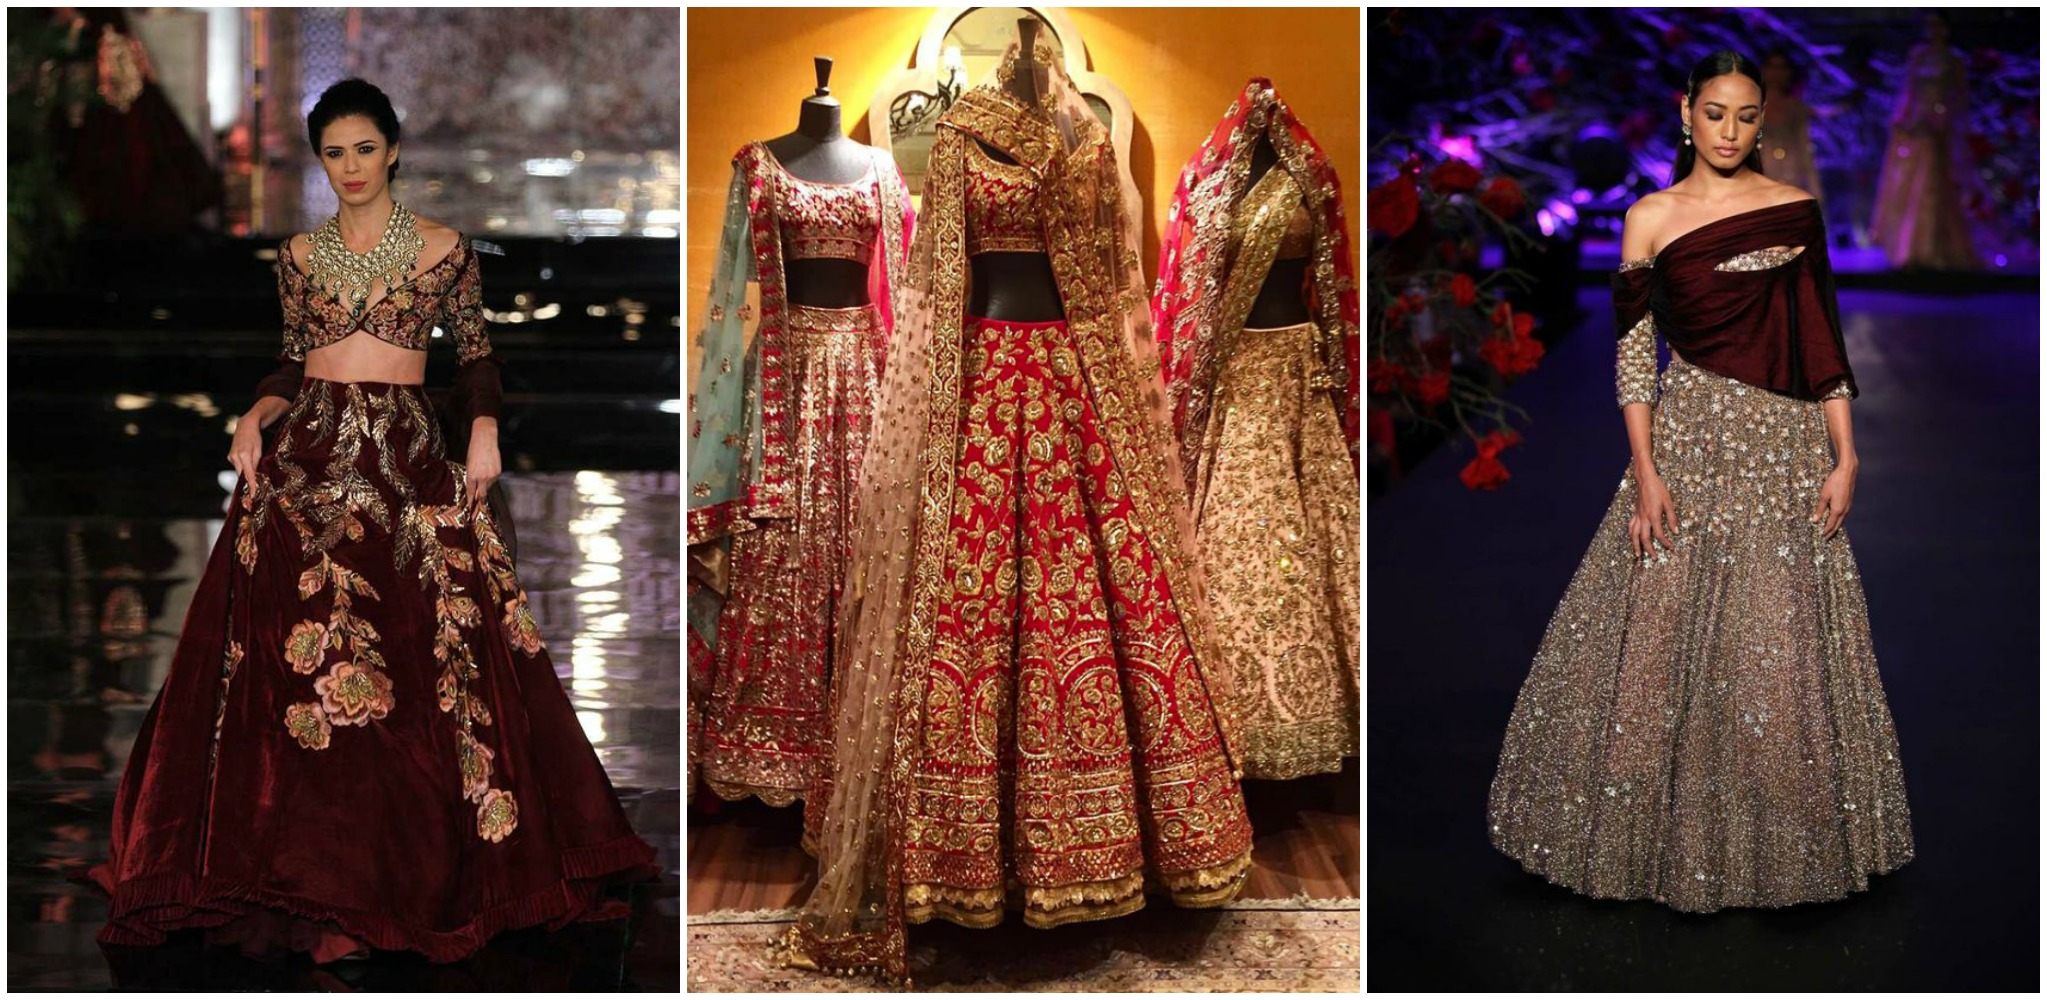 About Brand - Manish Malhotra